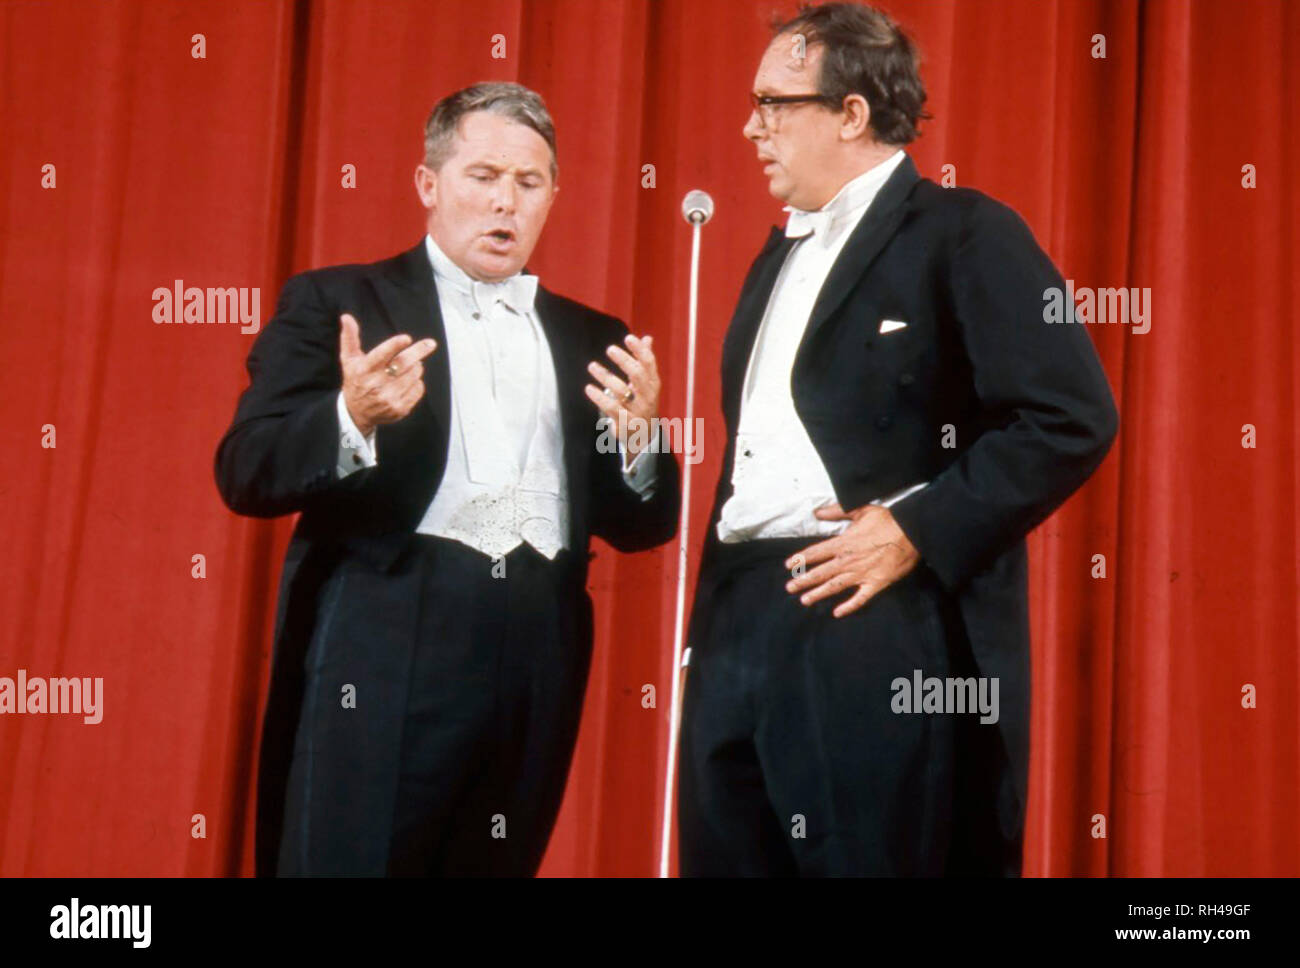 MORECAMBE AND WISE English comic double act with Ernie Wise at left and Eric Morecambe - Stock Image